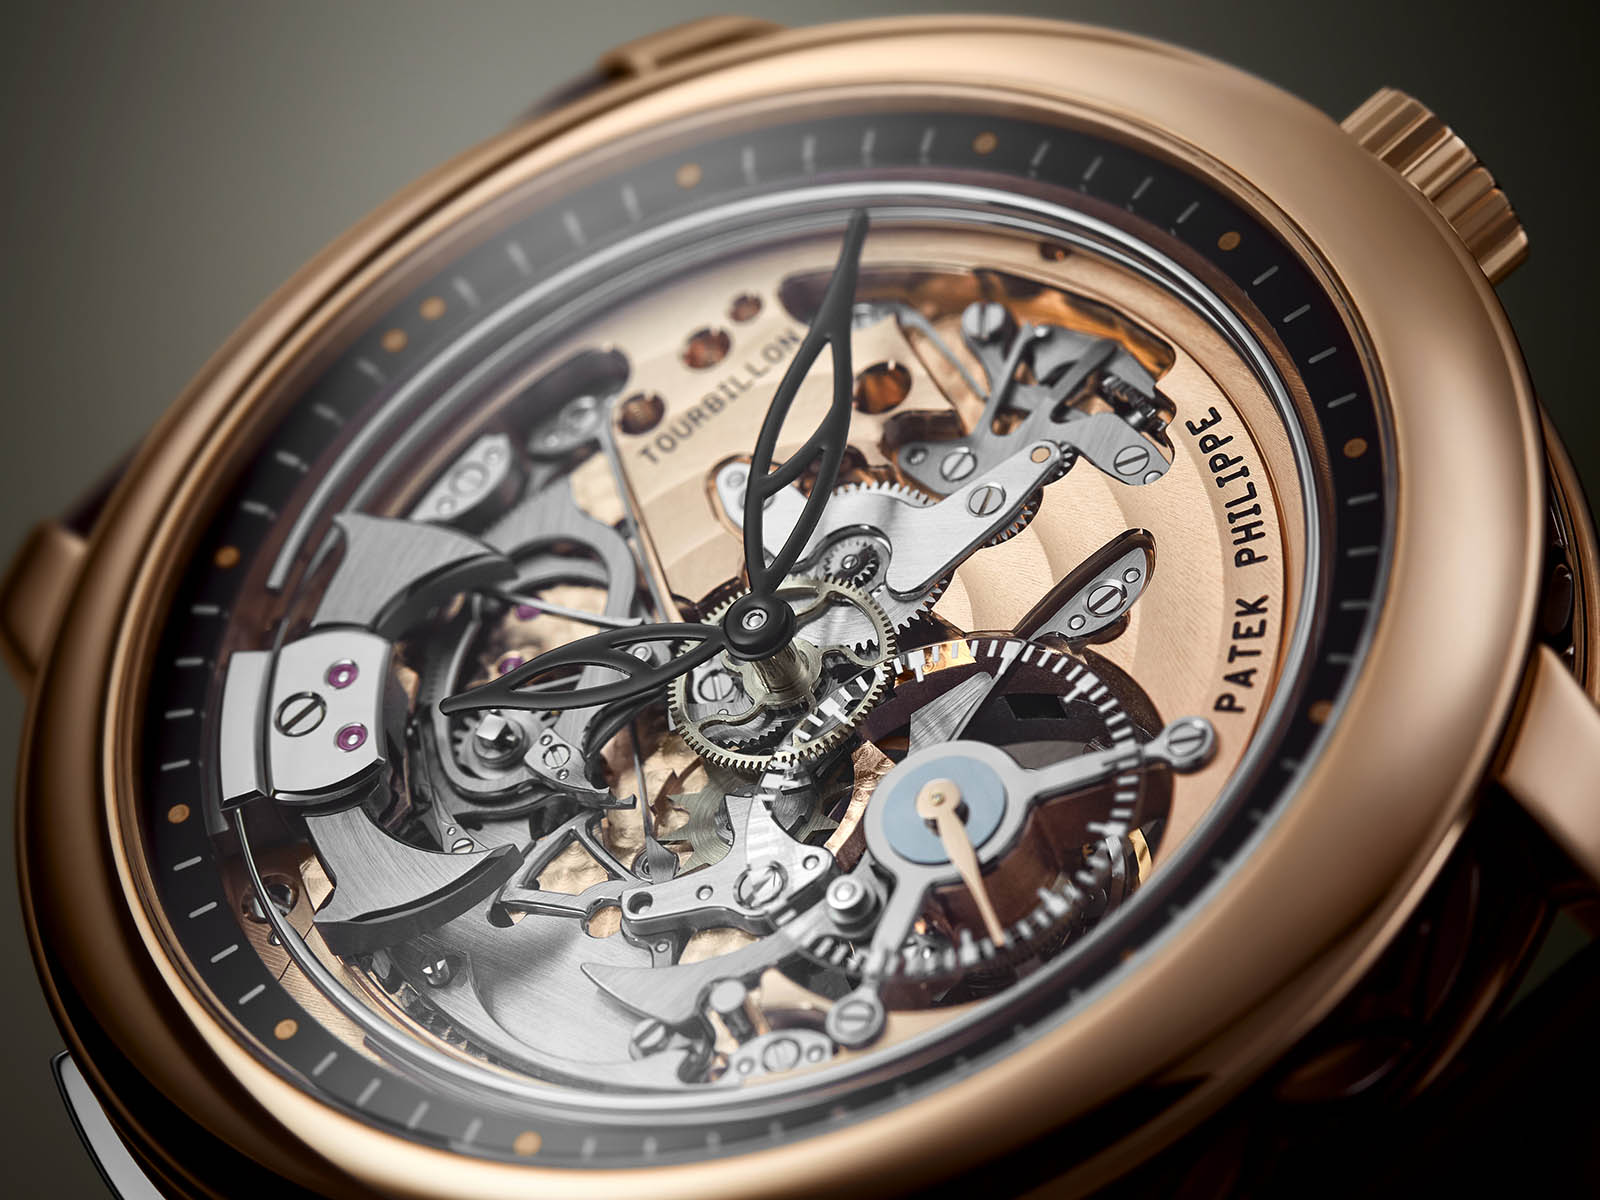 5303r-001-patek-philippe-5303r-minute-repeater-tourbillon-4.jpg